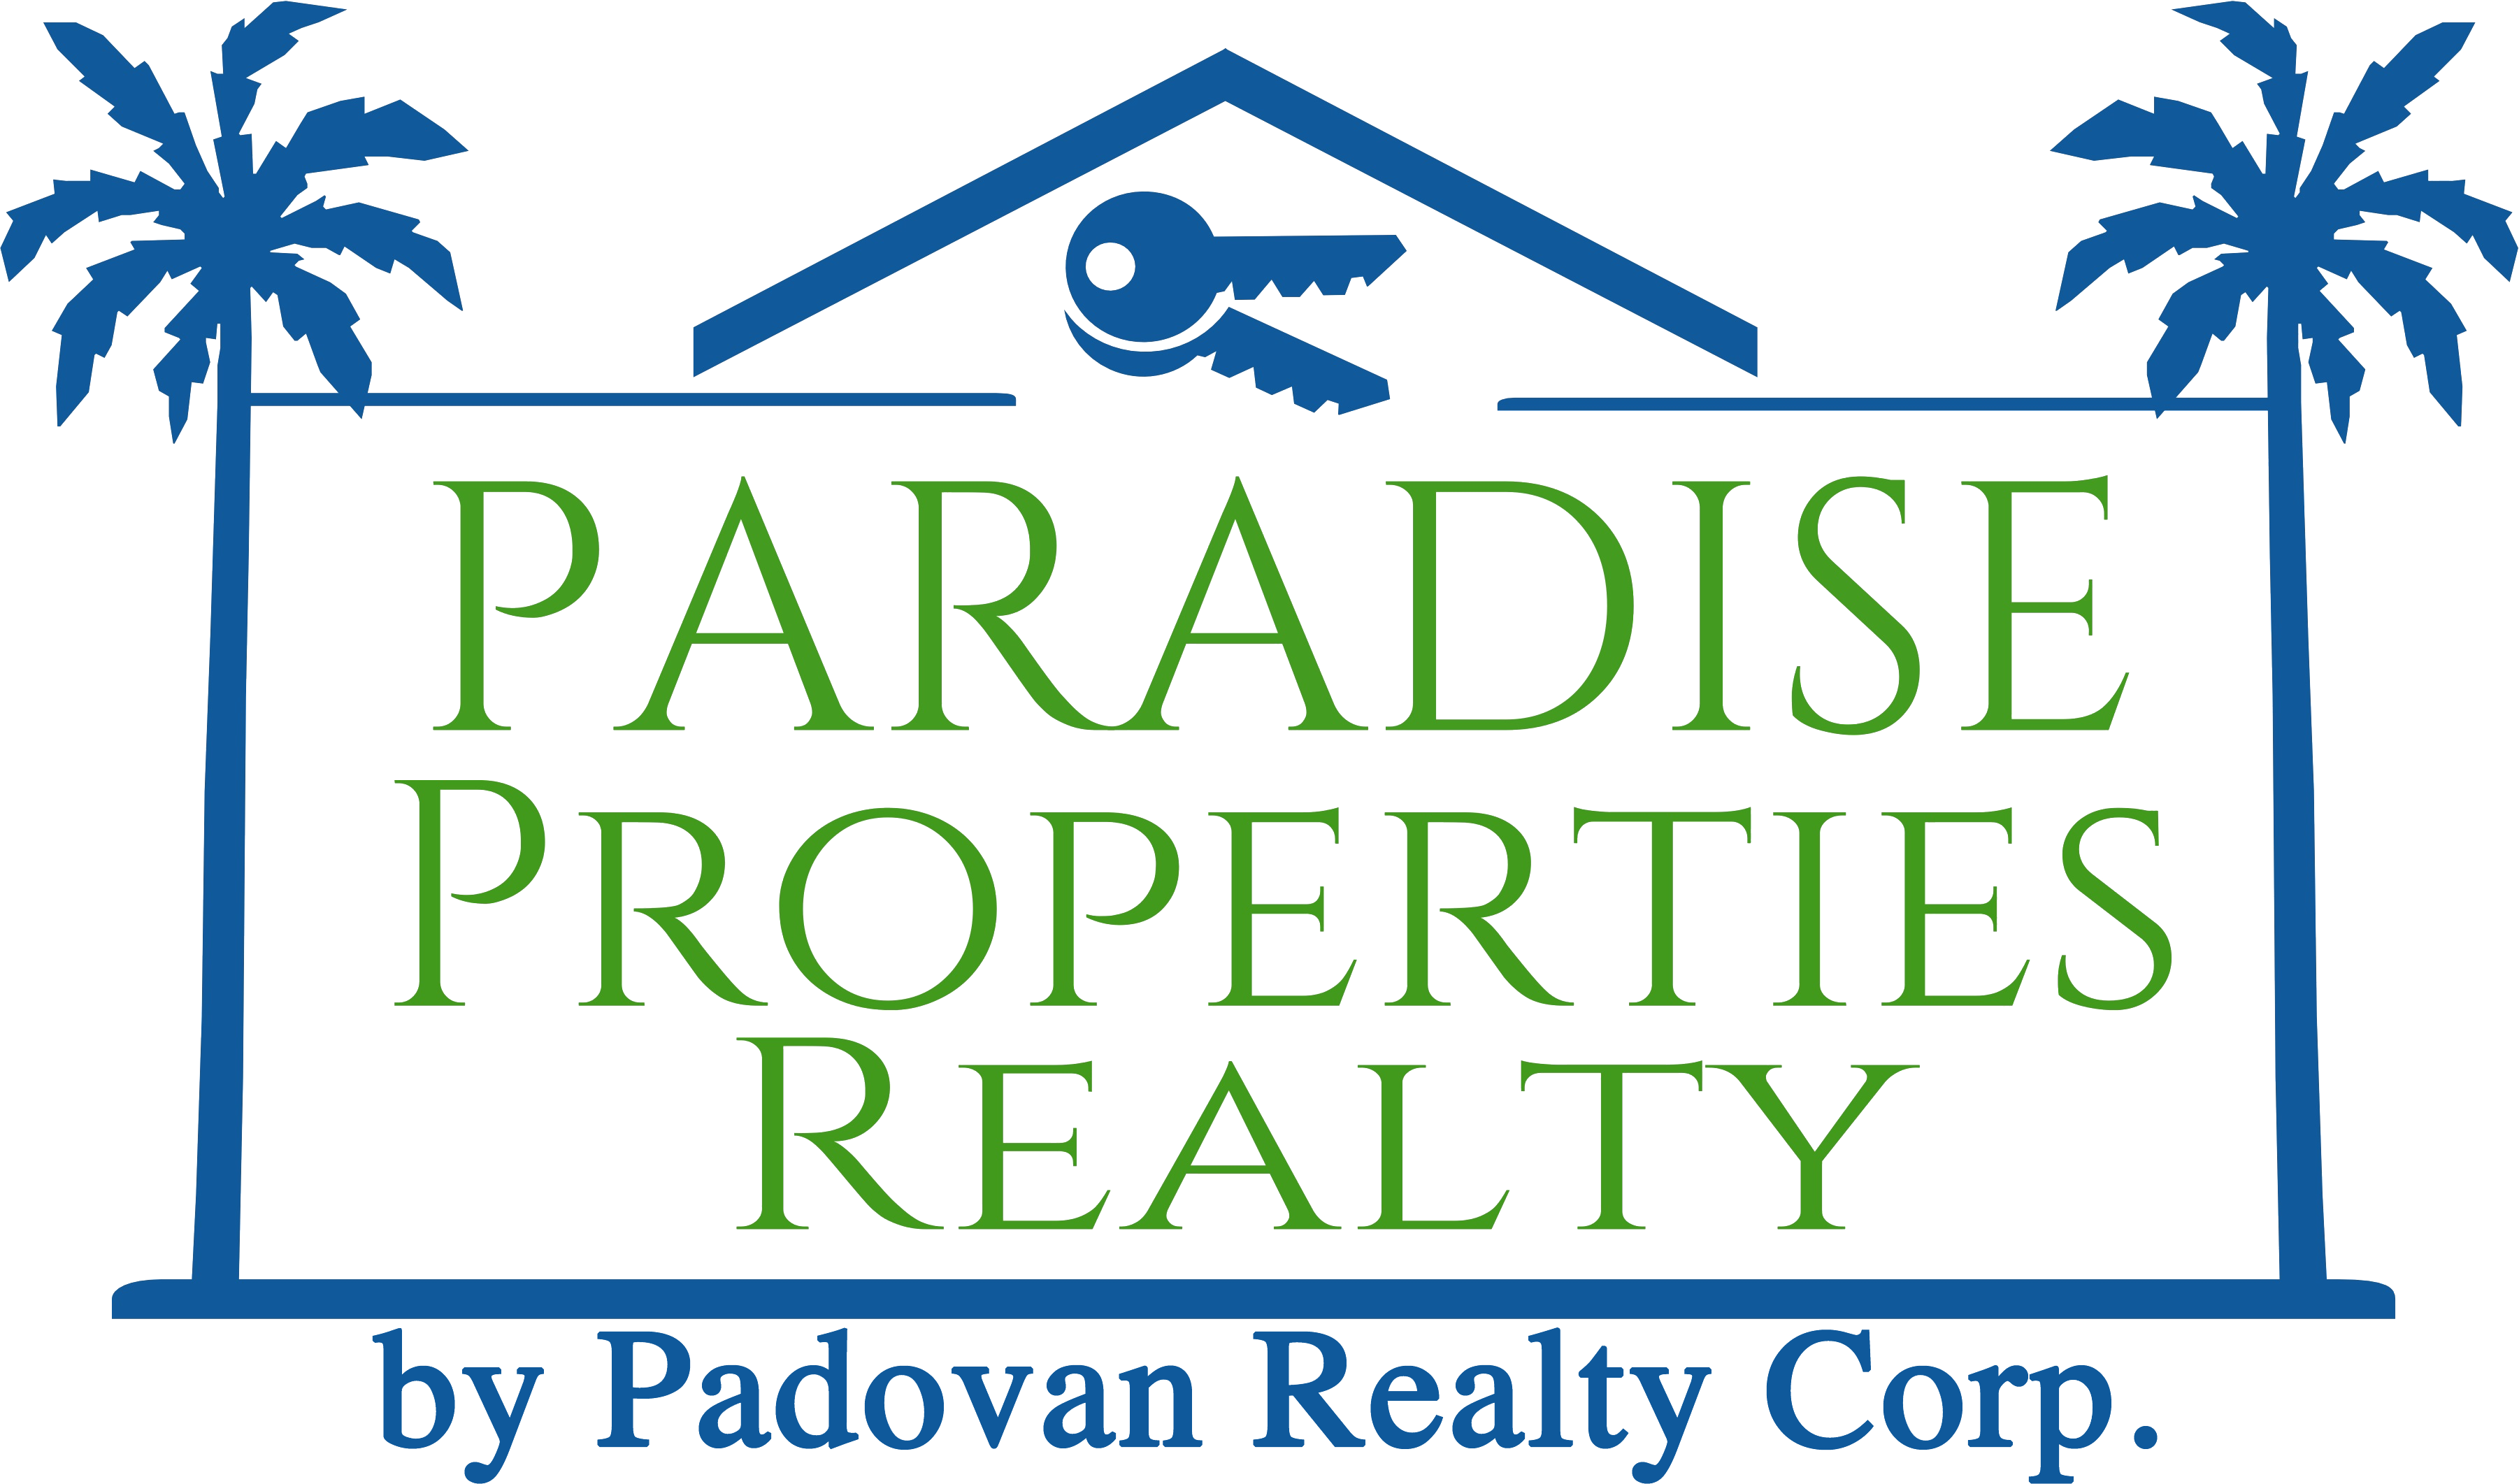 Paradise Properties Realty by padovan realty corp.